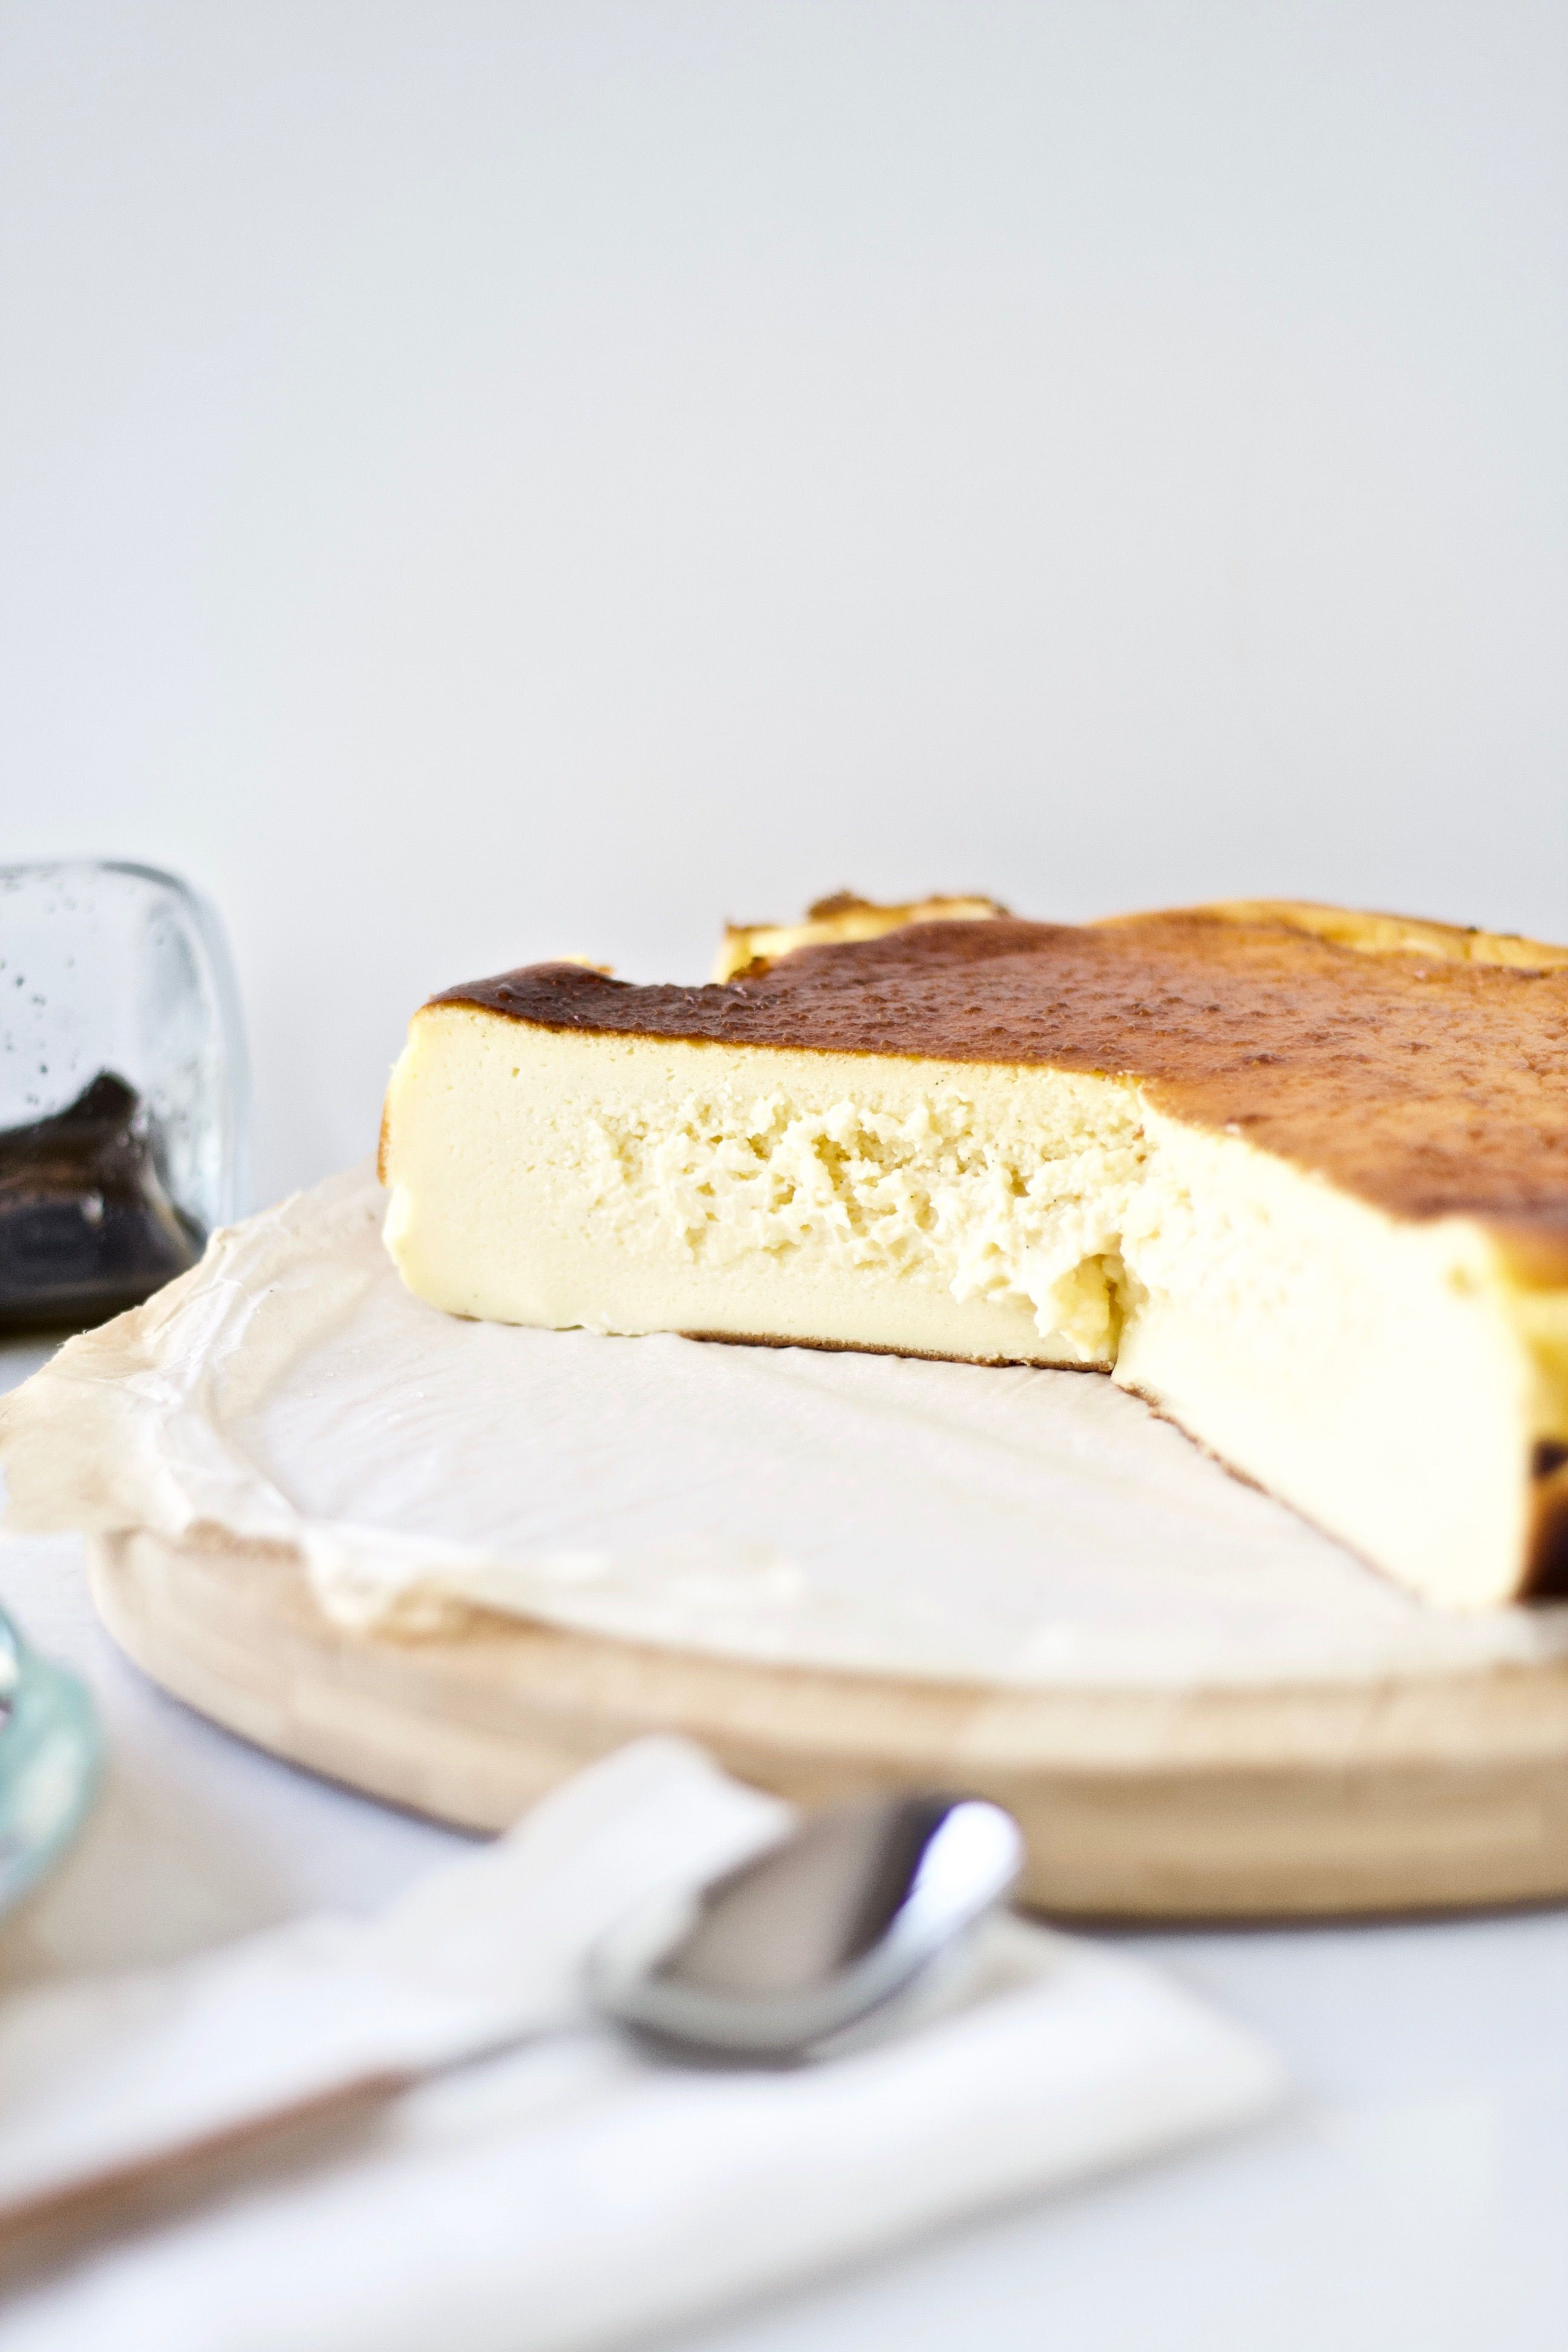 Photo of Burnt Cheesecake (San Sebastián)